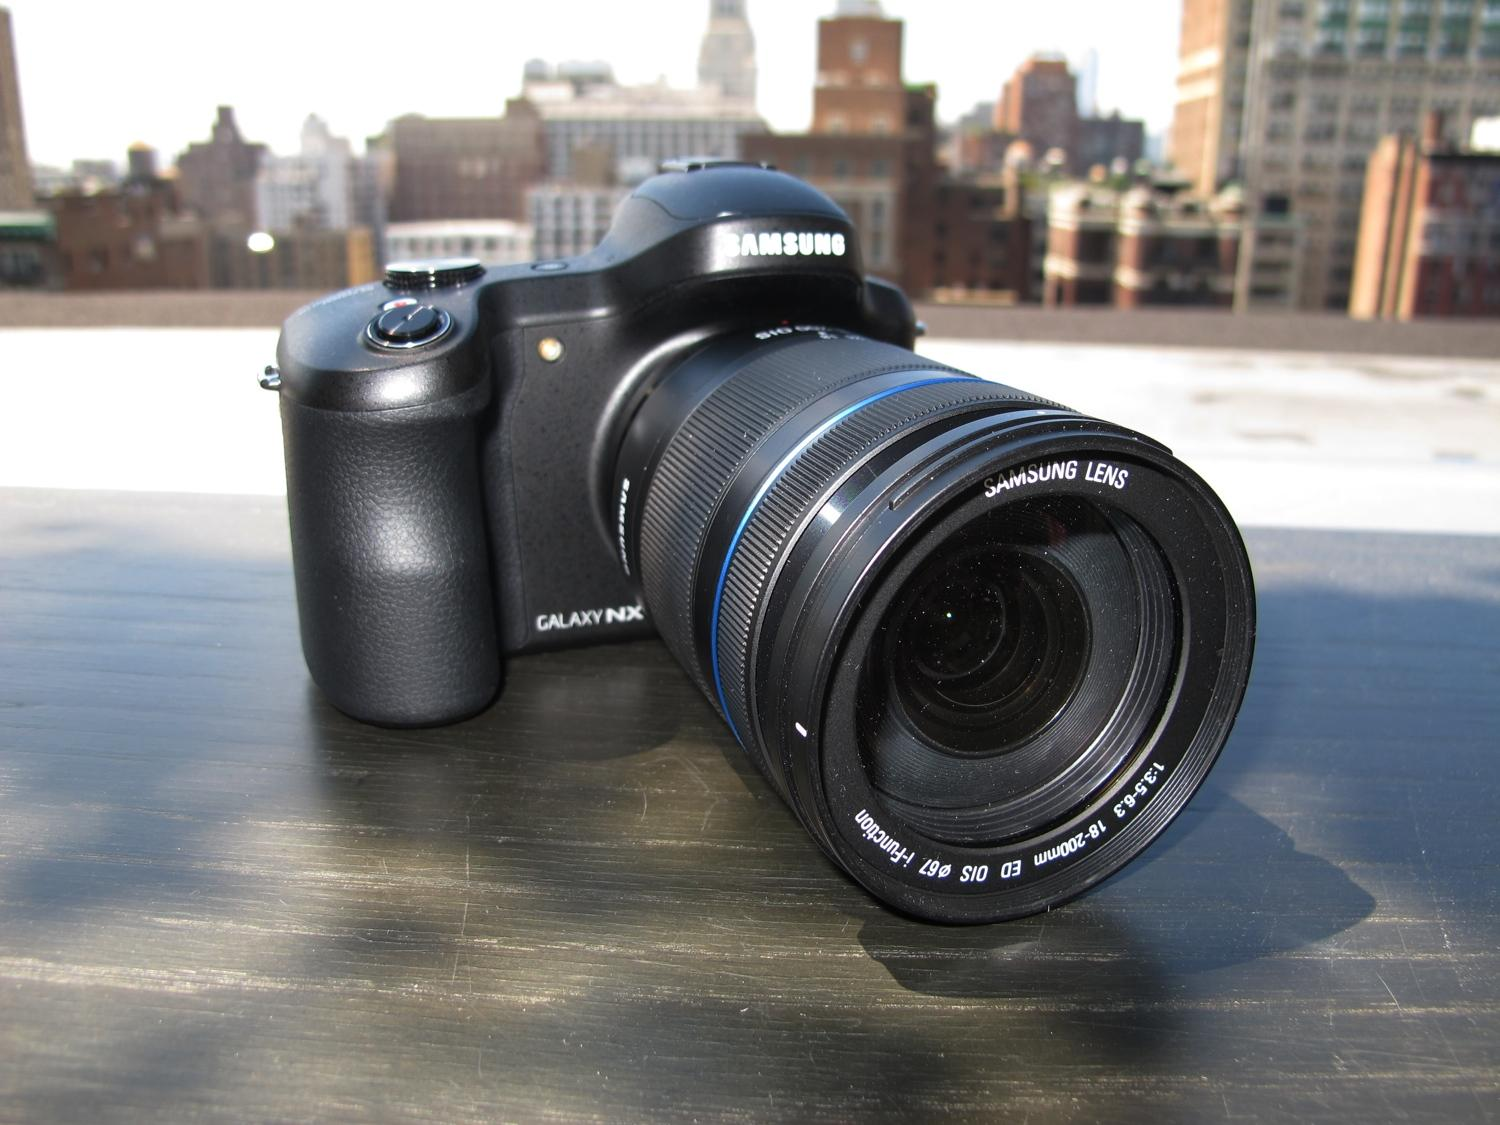 digital android camera Nikon android s800c is a wi-fi digital camera that lets you share photos and enjoy all of the image power of a nikon.